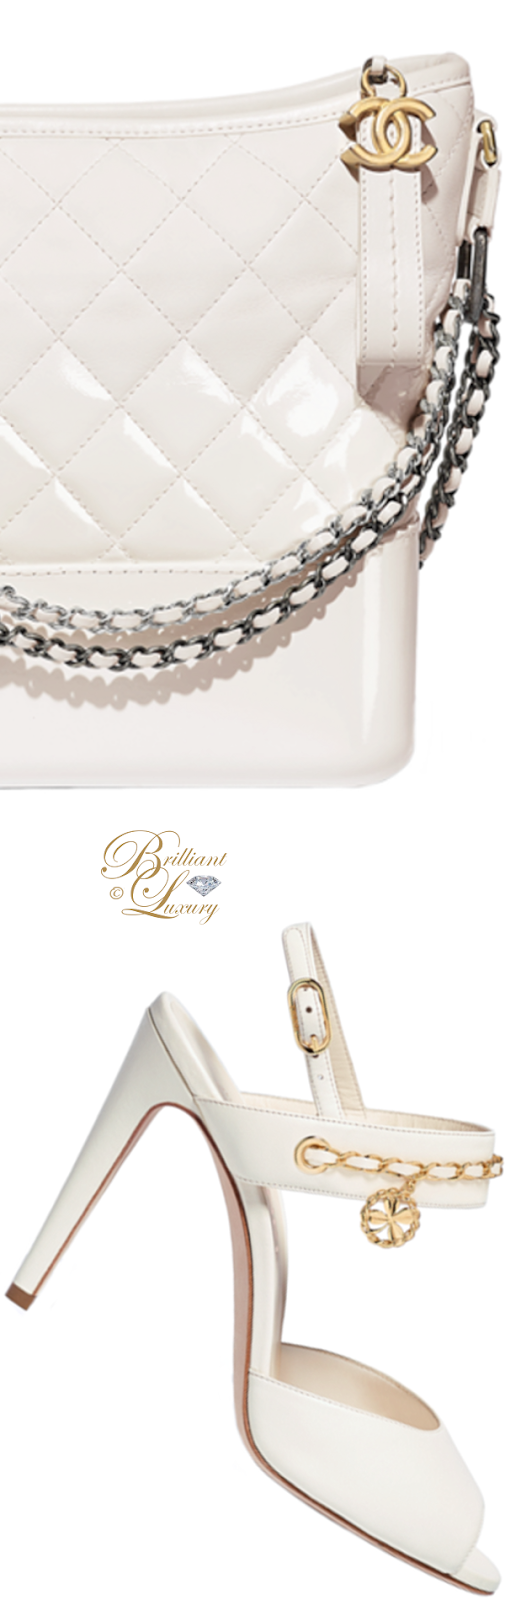 Brilliant Luxury ♦ Chanel white Gabrielle hobo bag and Chanel sandals